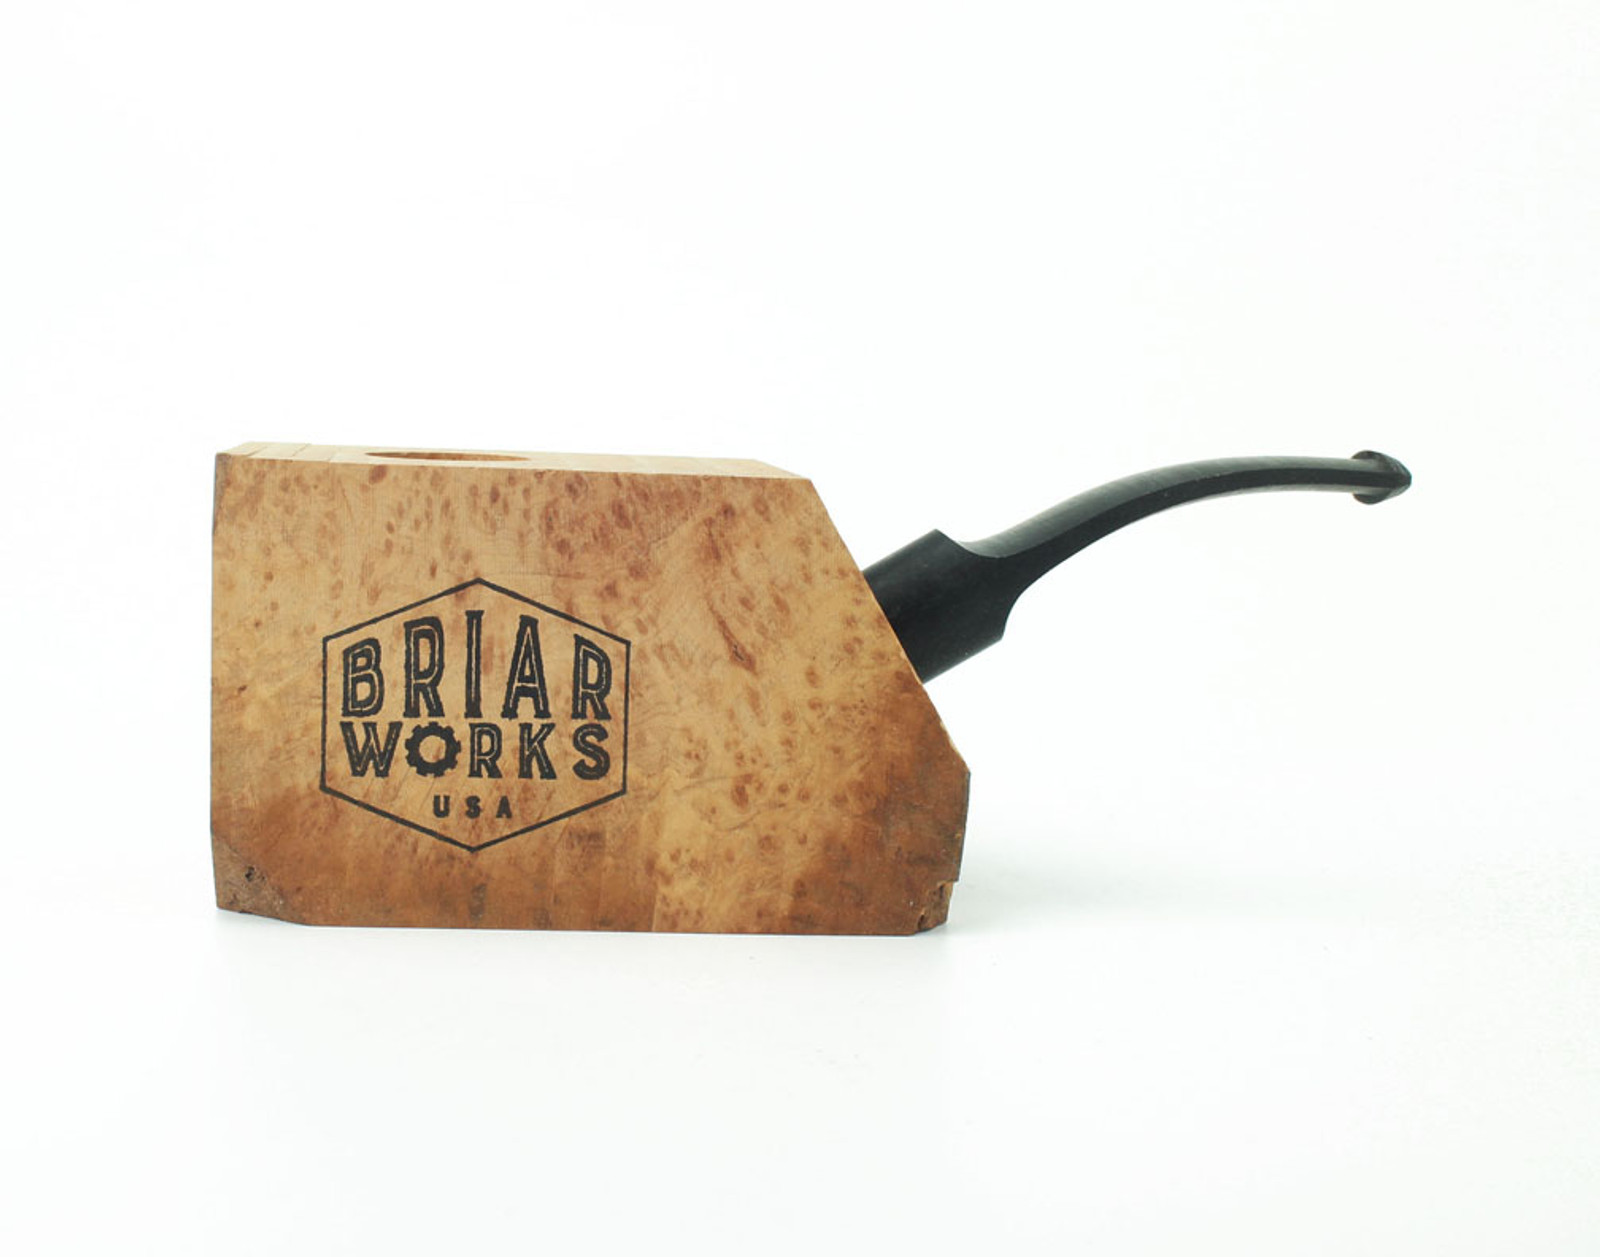 PKE-B - BriarWorks Pipe Kit - Ebauchon w/ Bent Stem